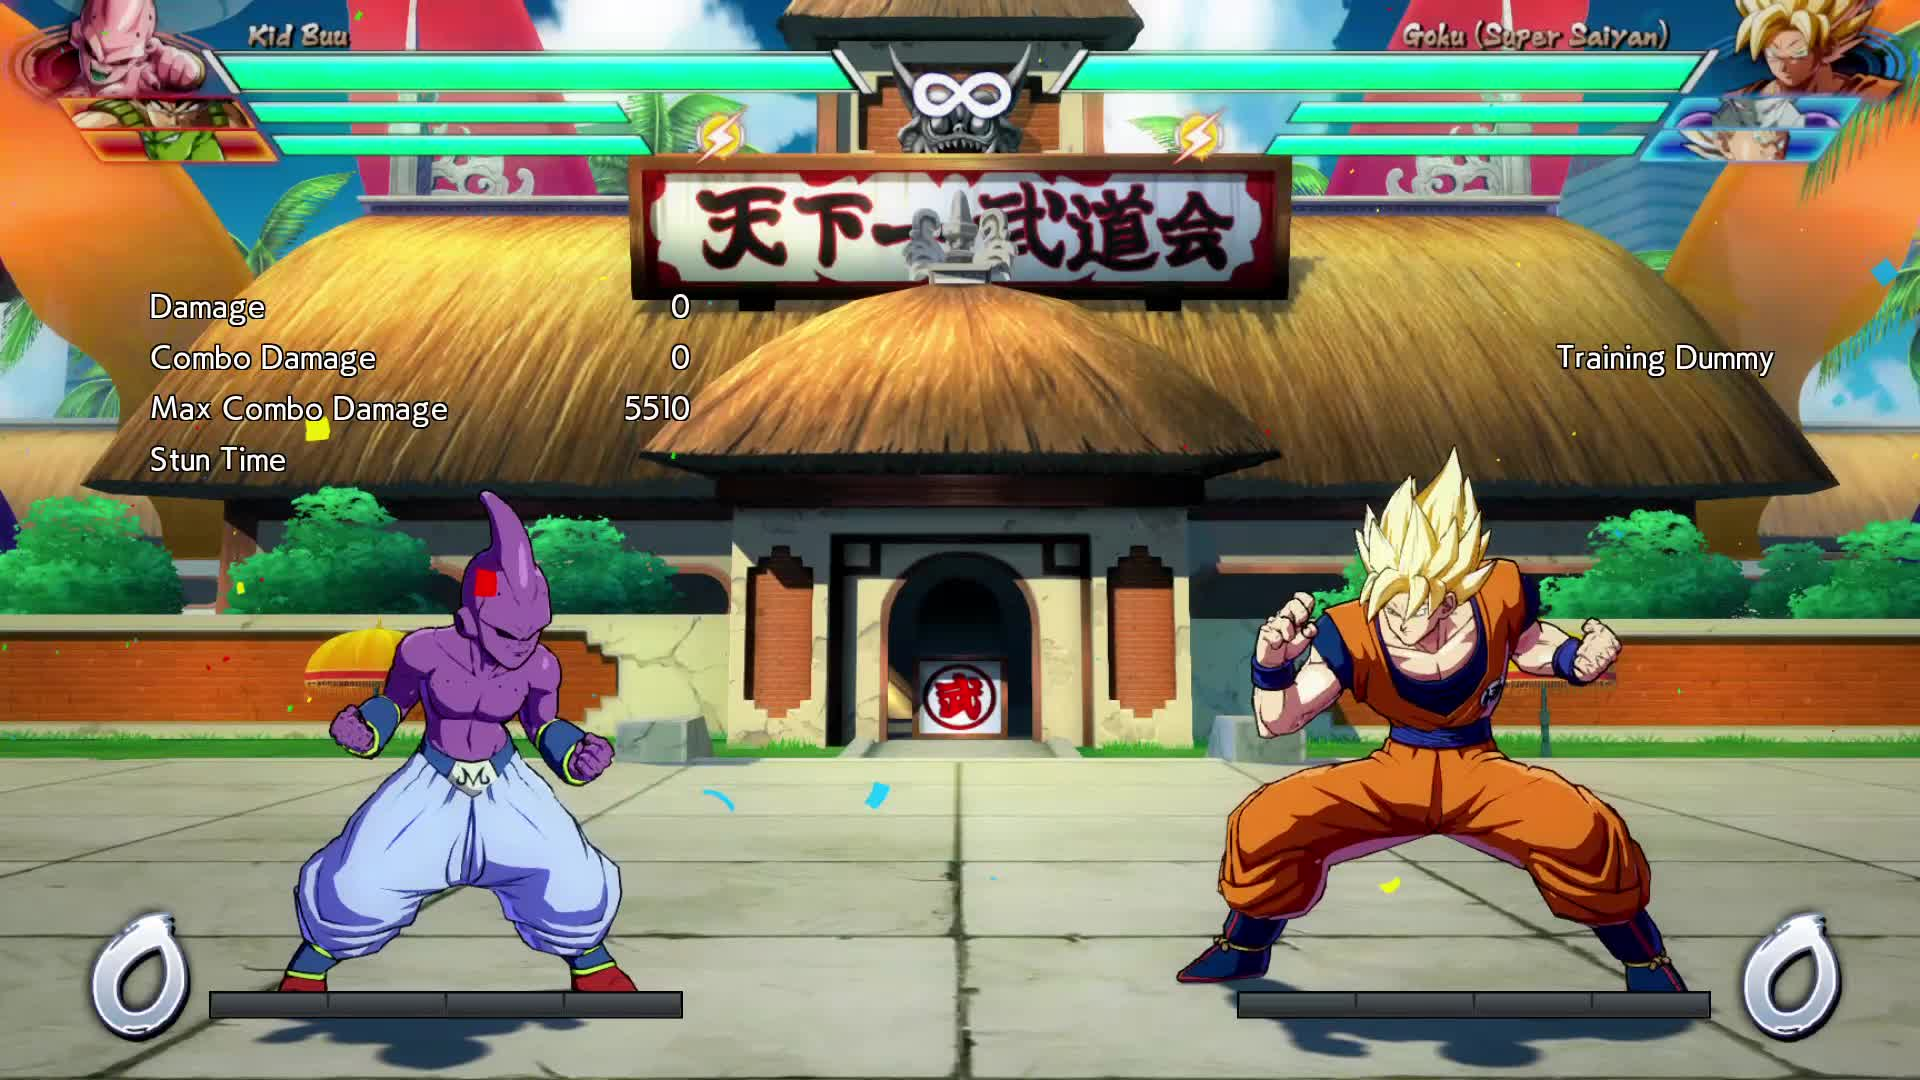 dbfz, dragonball fighterz, phew GIFs